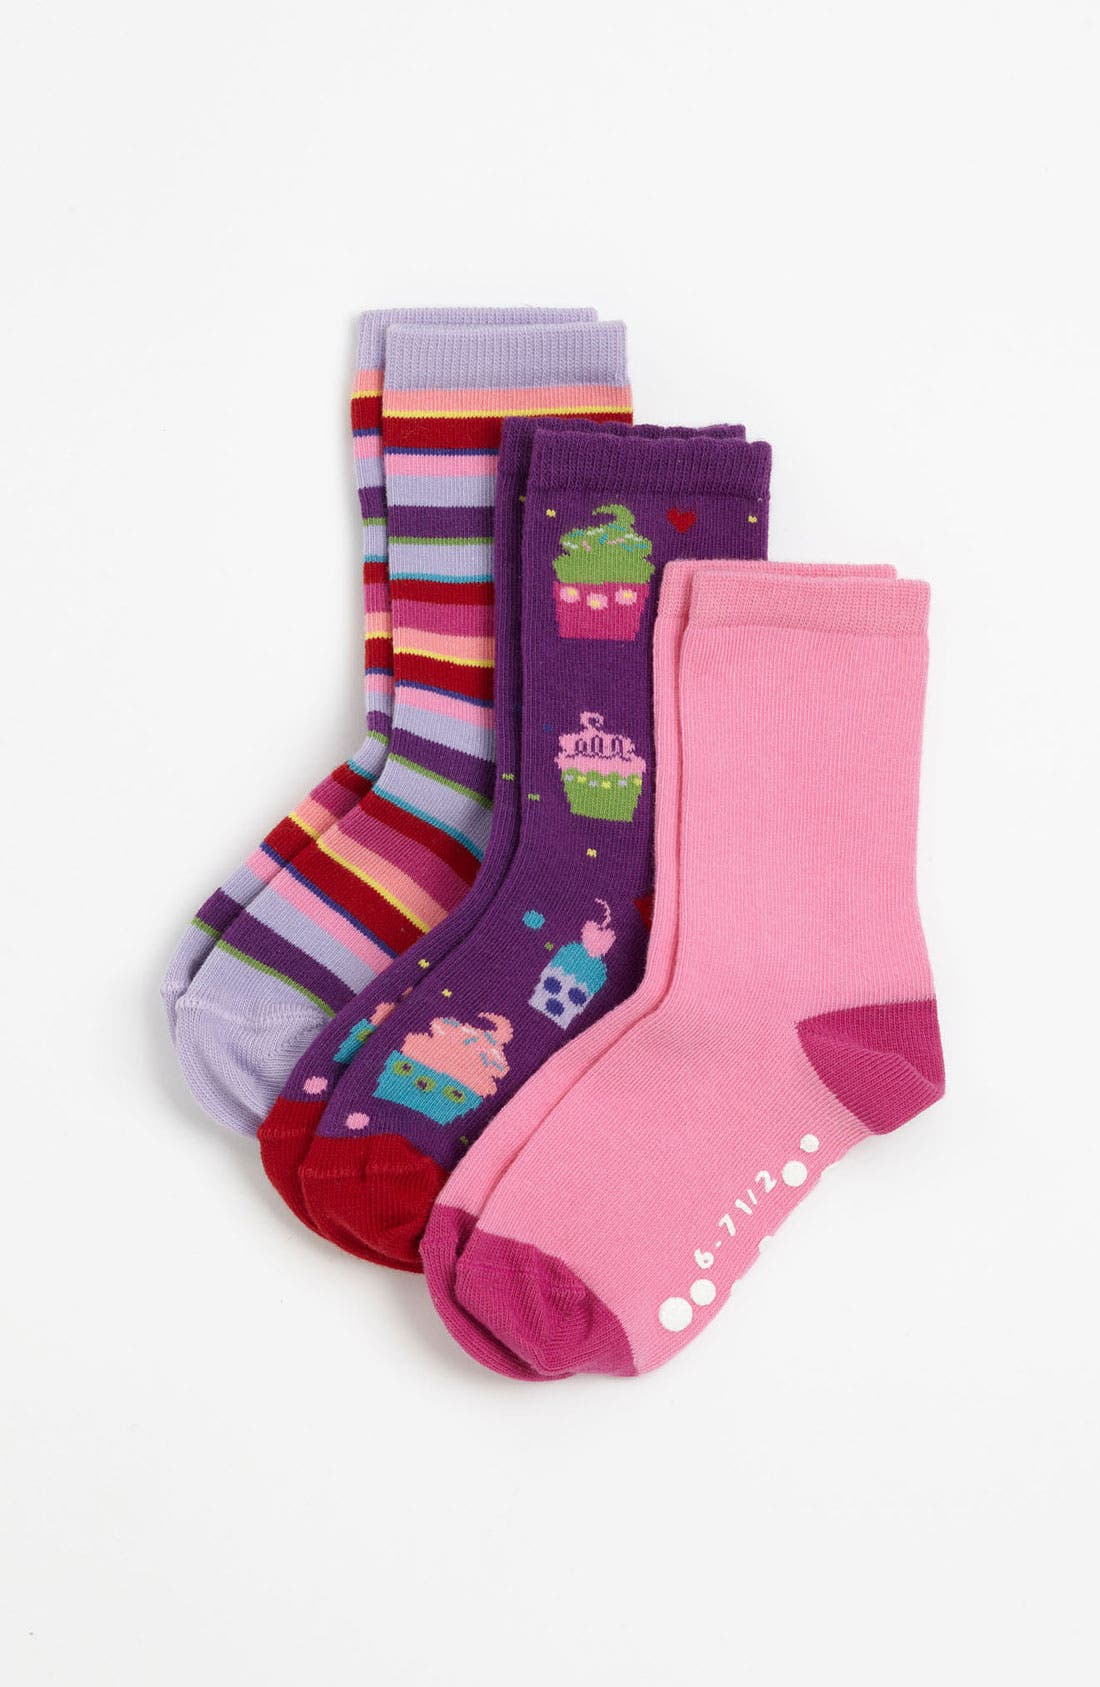 Main Image - Nordstrom 'Sweet Treats' Crew Socks (3-Pack) (Girls)